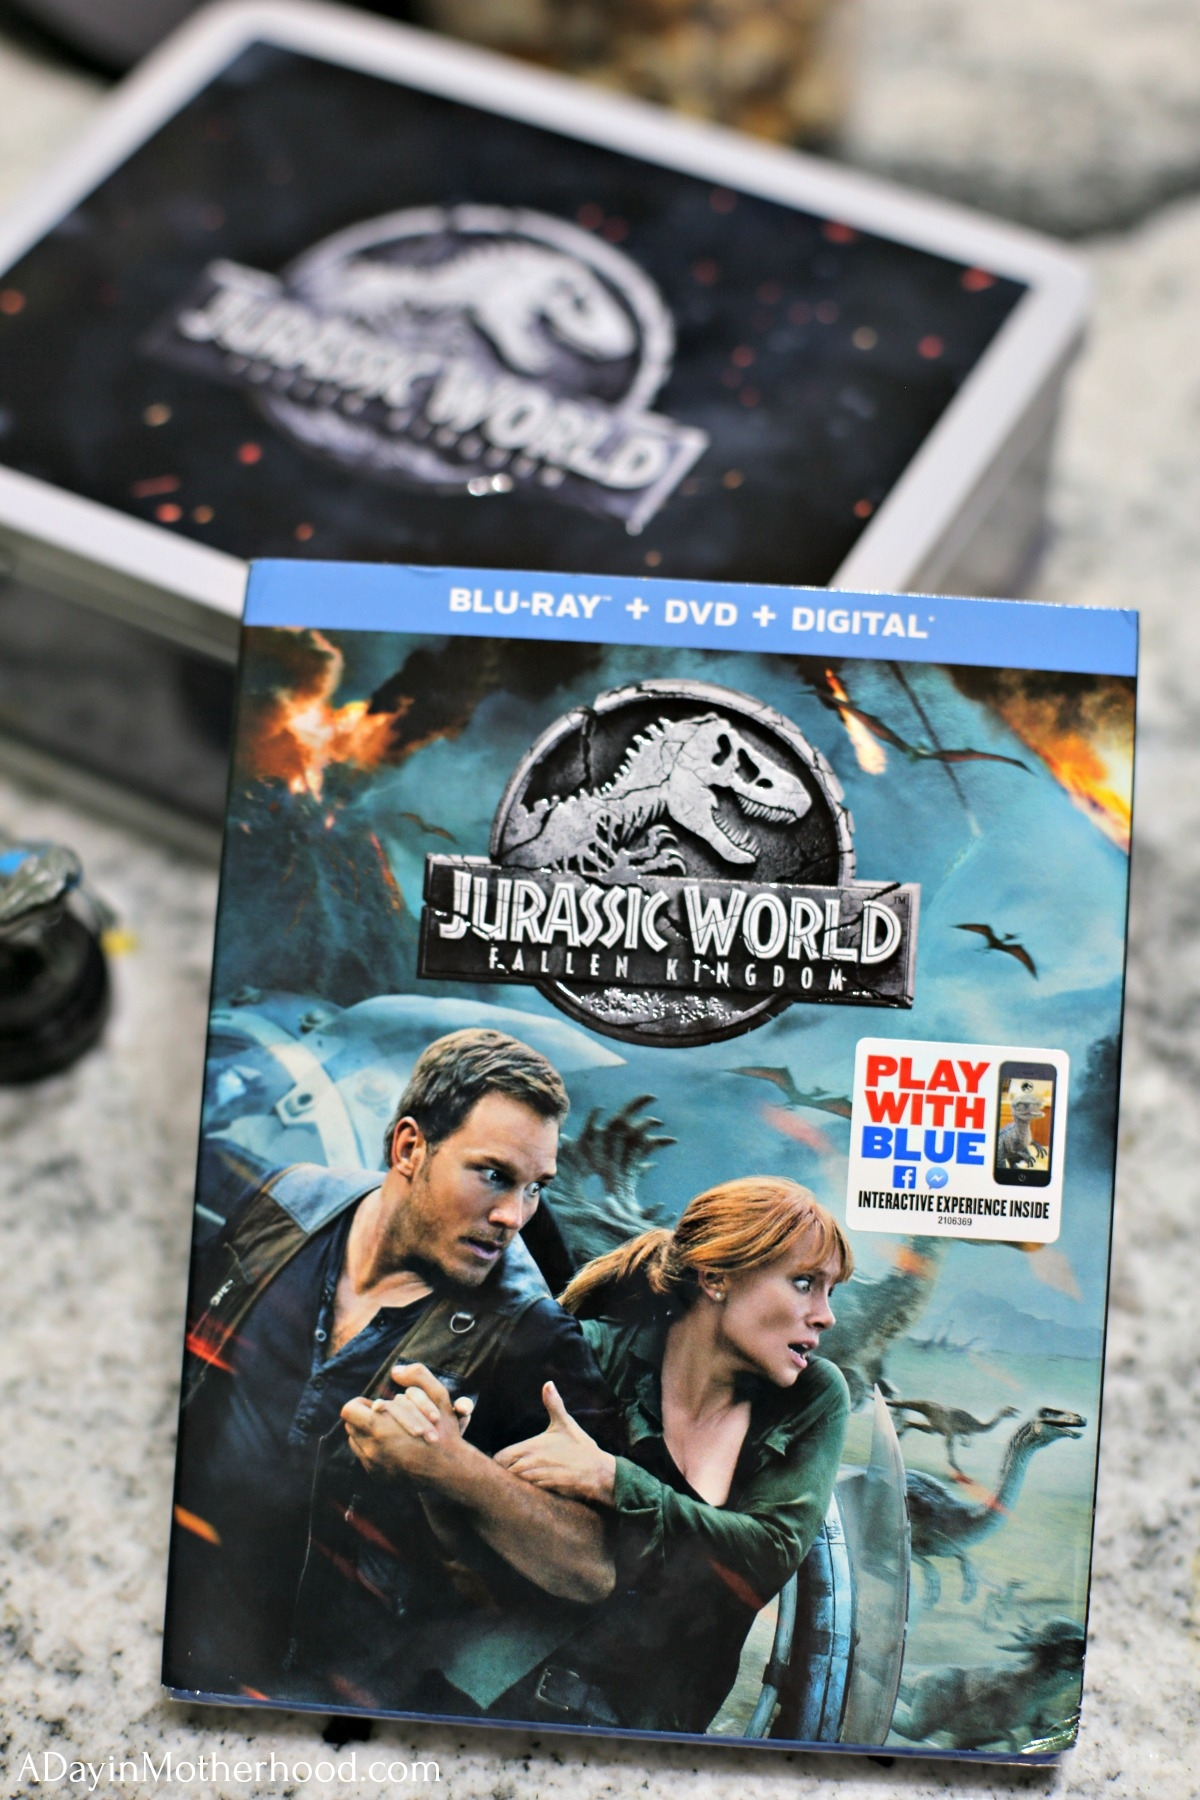 JURASSIC WORLD: FALLEN KINGDOM Easy Movie Night Ideas with blu-ray